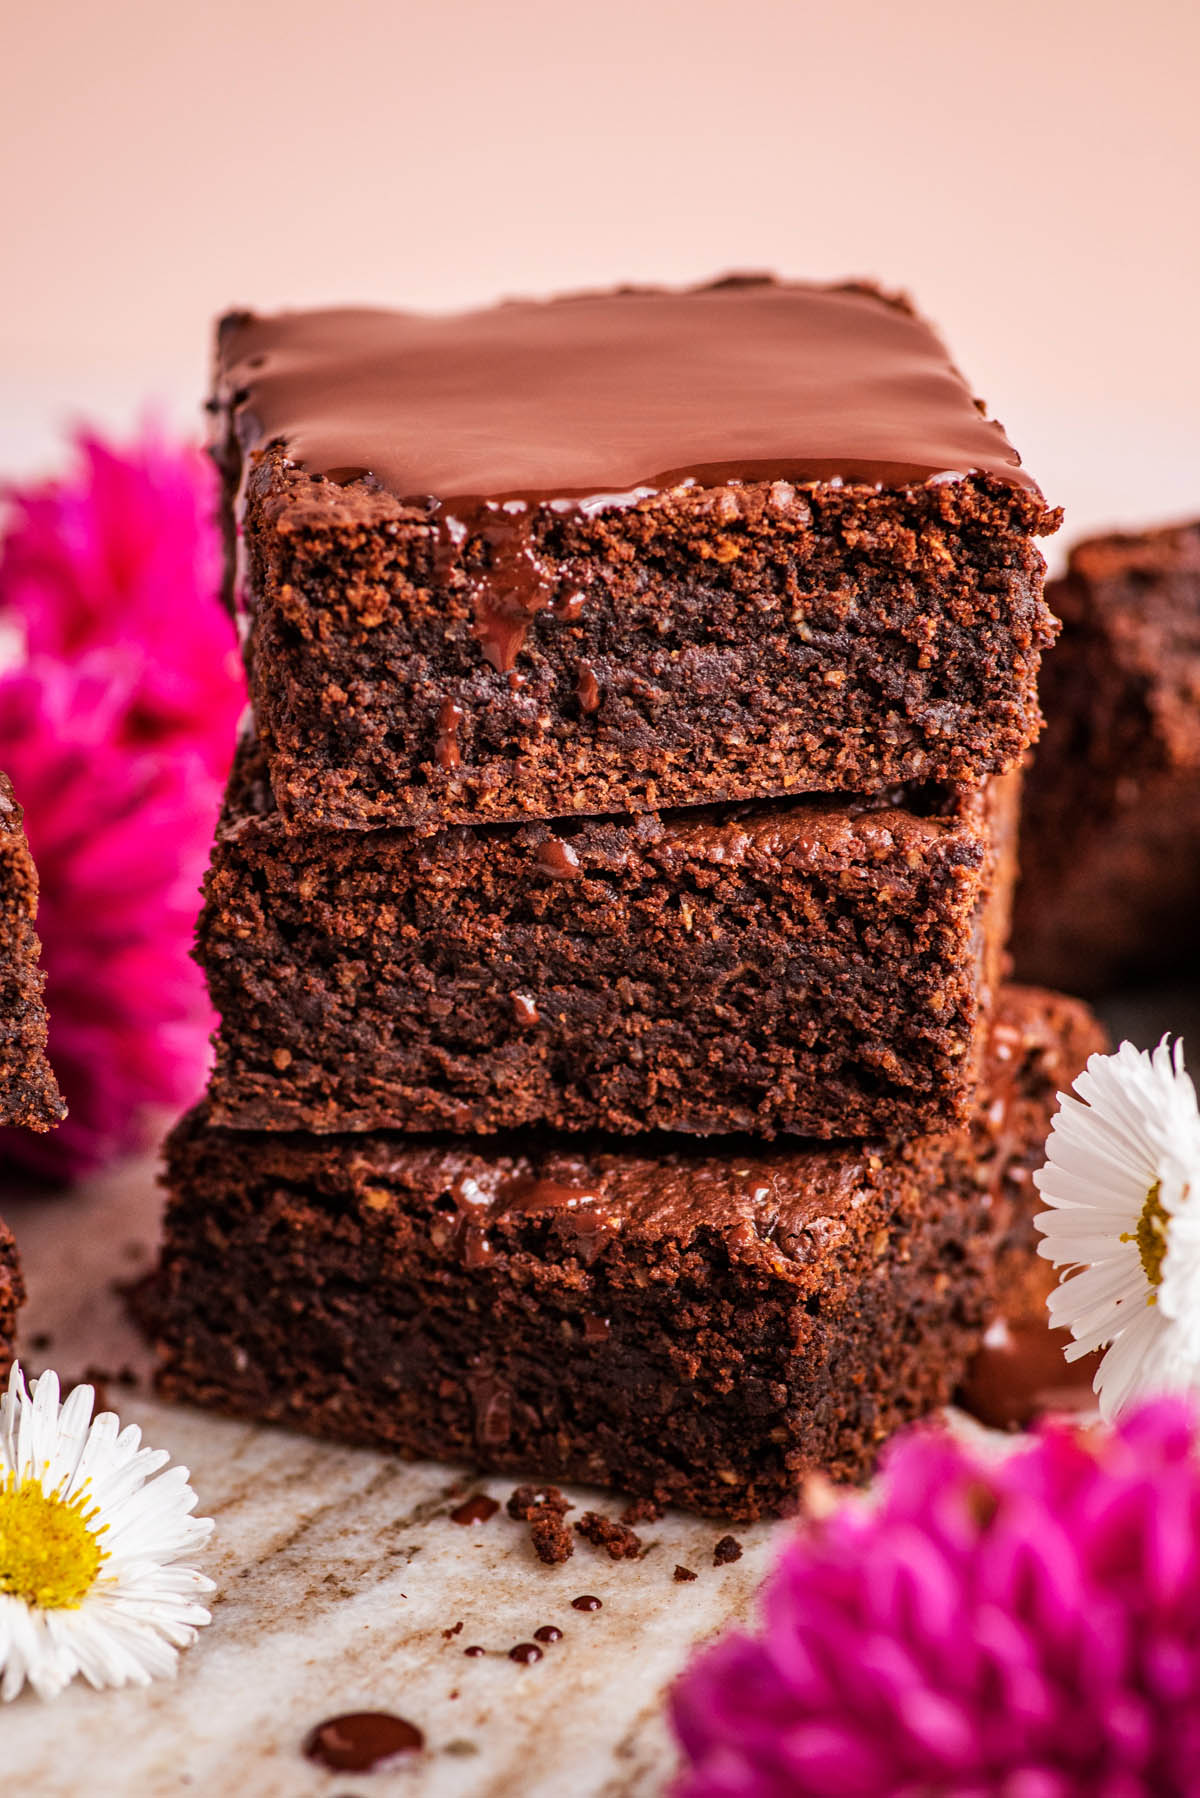 A stack of three brownies with melted chocolate and flowers.